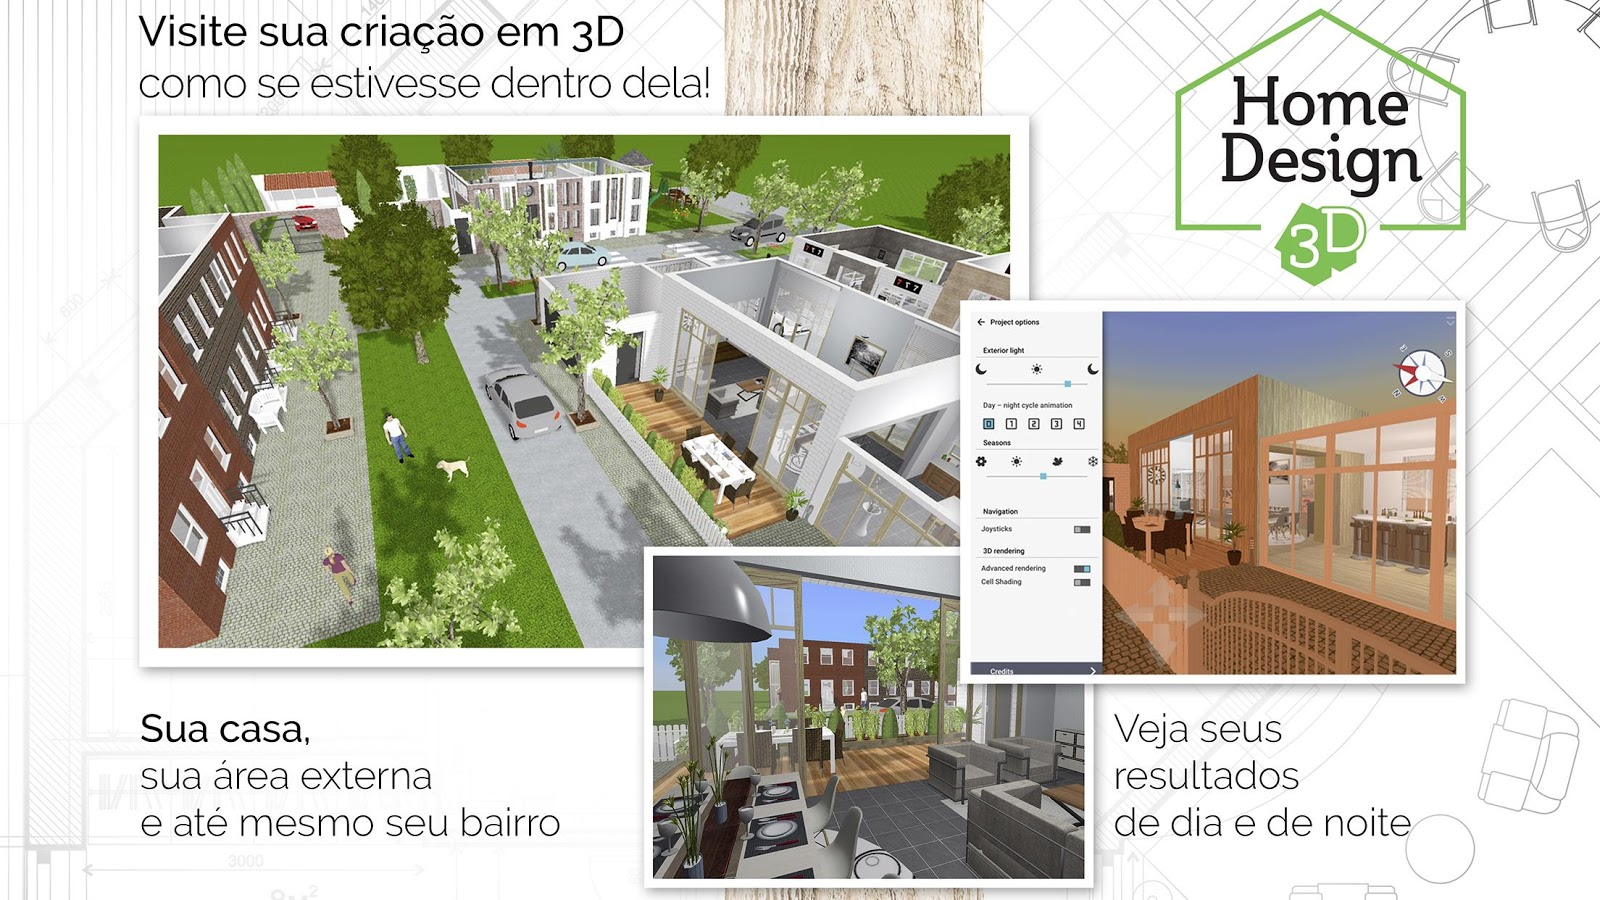 home design 3d freemium apps para android no google play